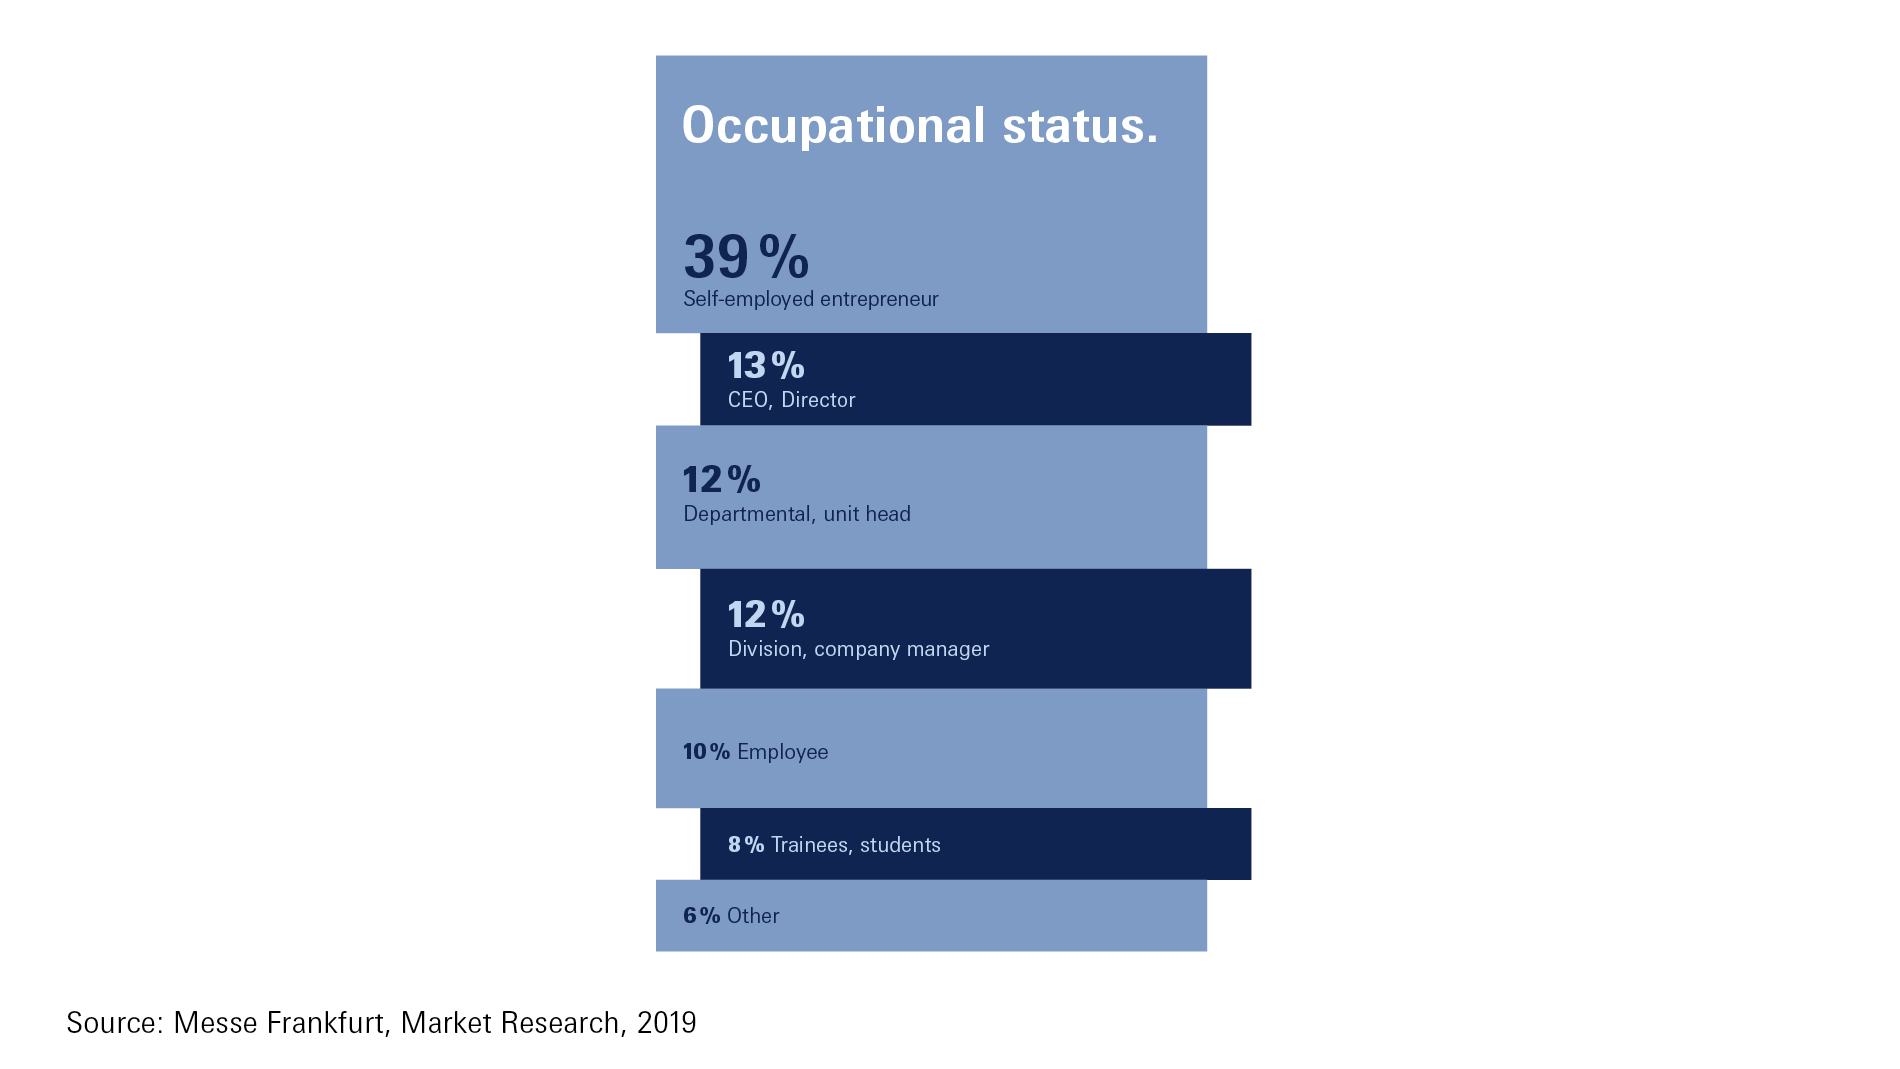 Ambiente - Occupational status 2019